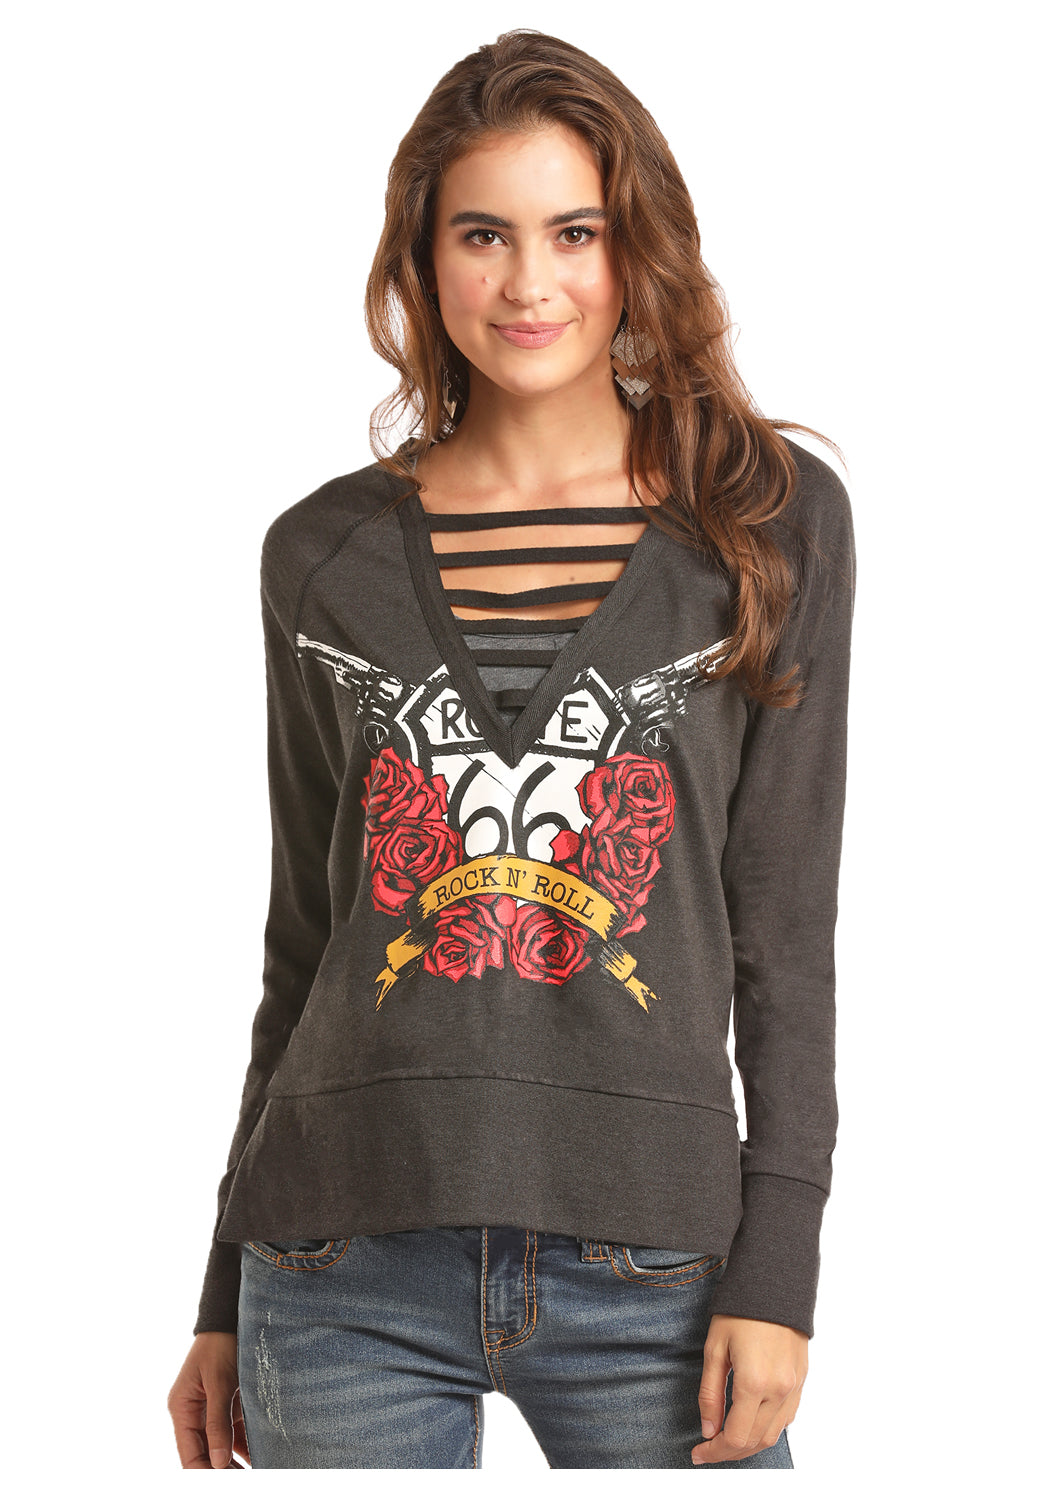 Women's Sweat Shirt Top By Rock & Roll Cowgirl